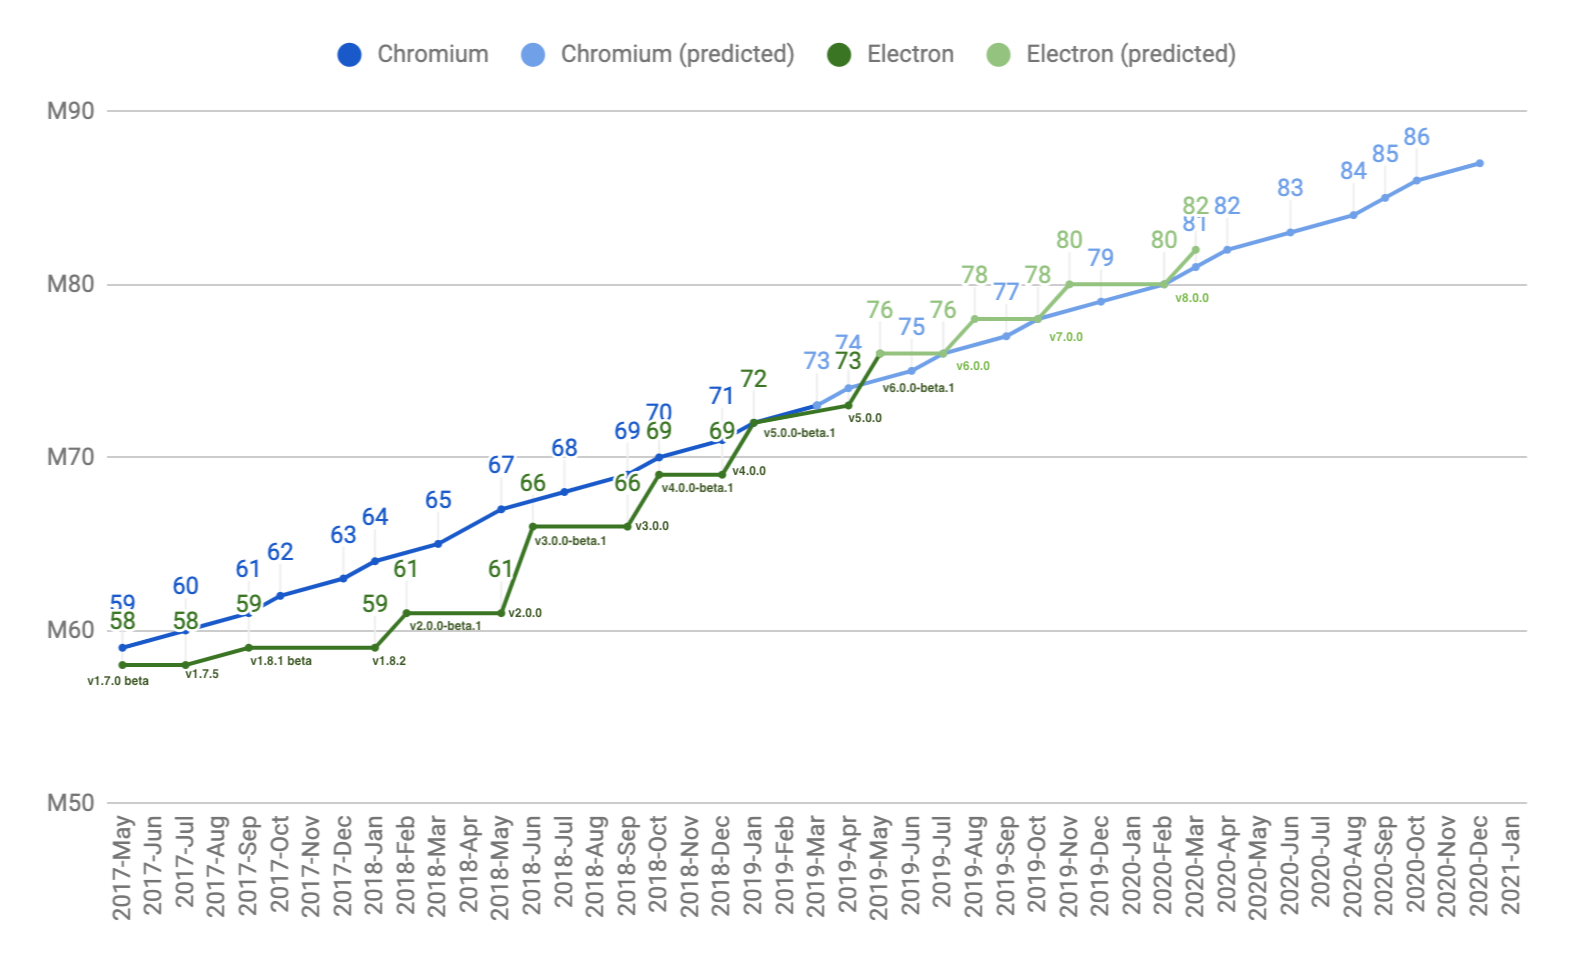 line graph comparing Electron versus Chromium versions